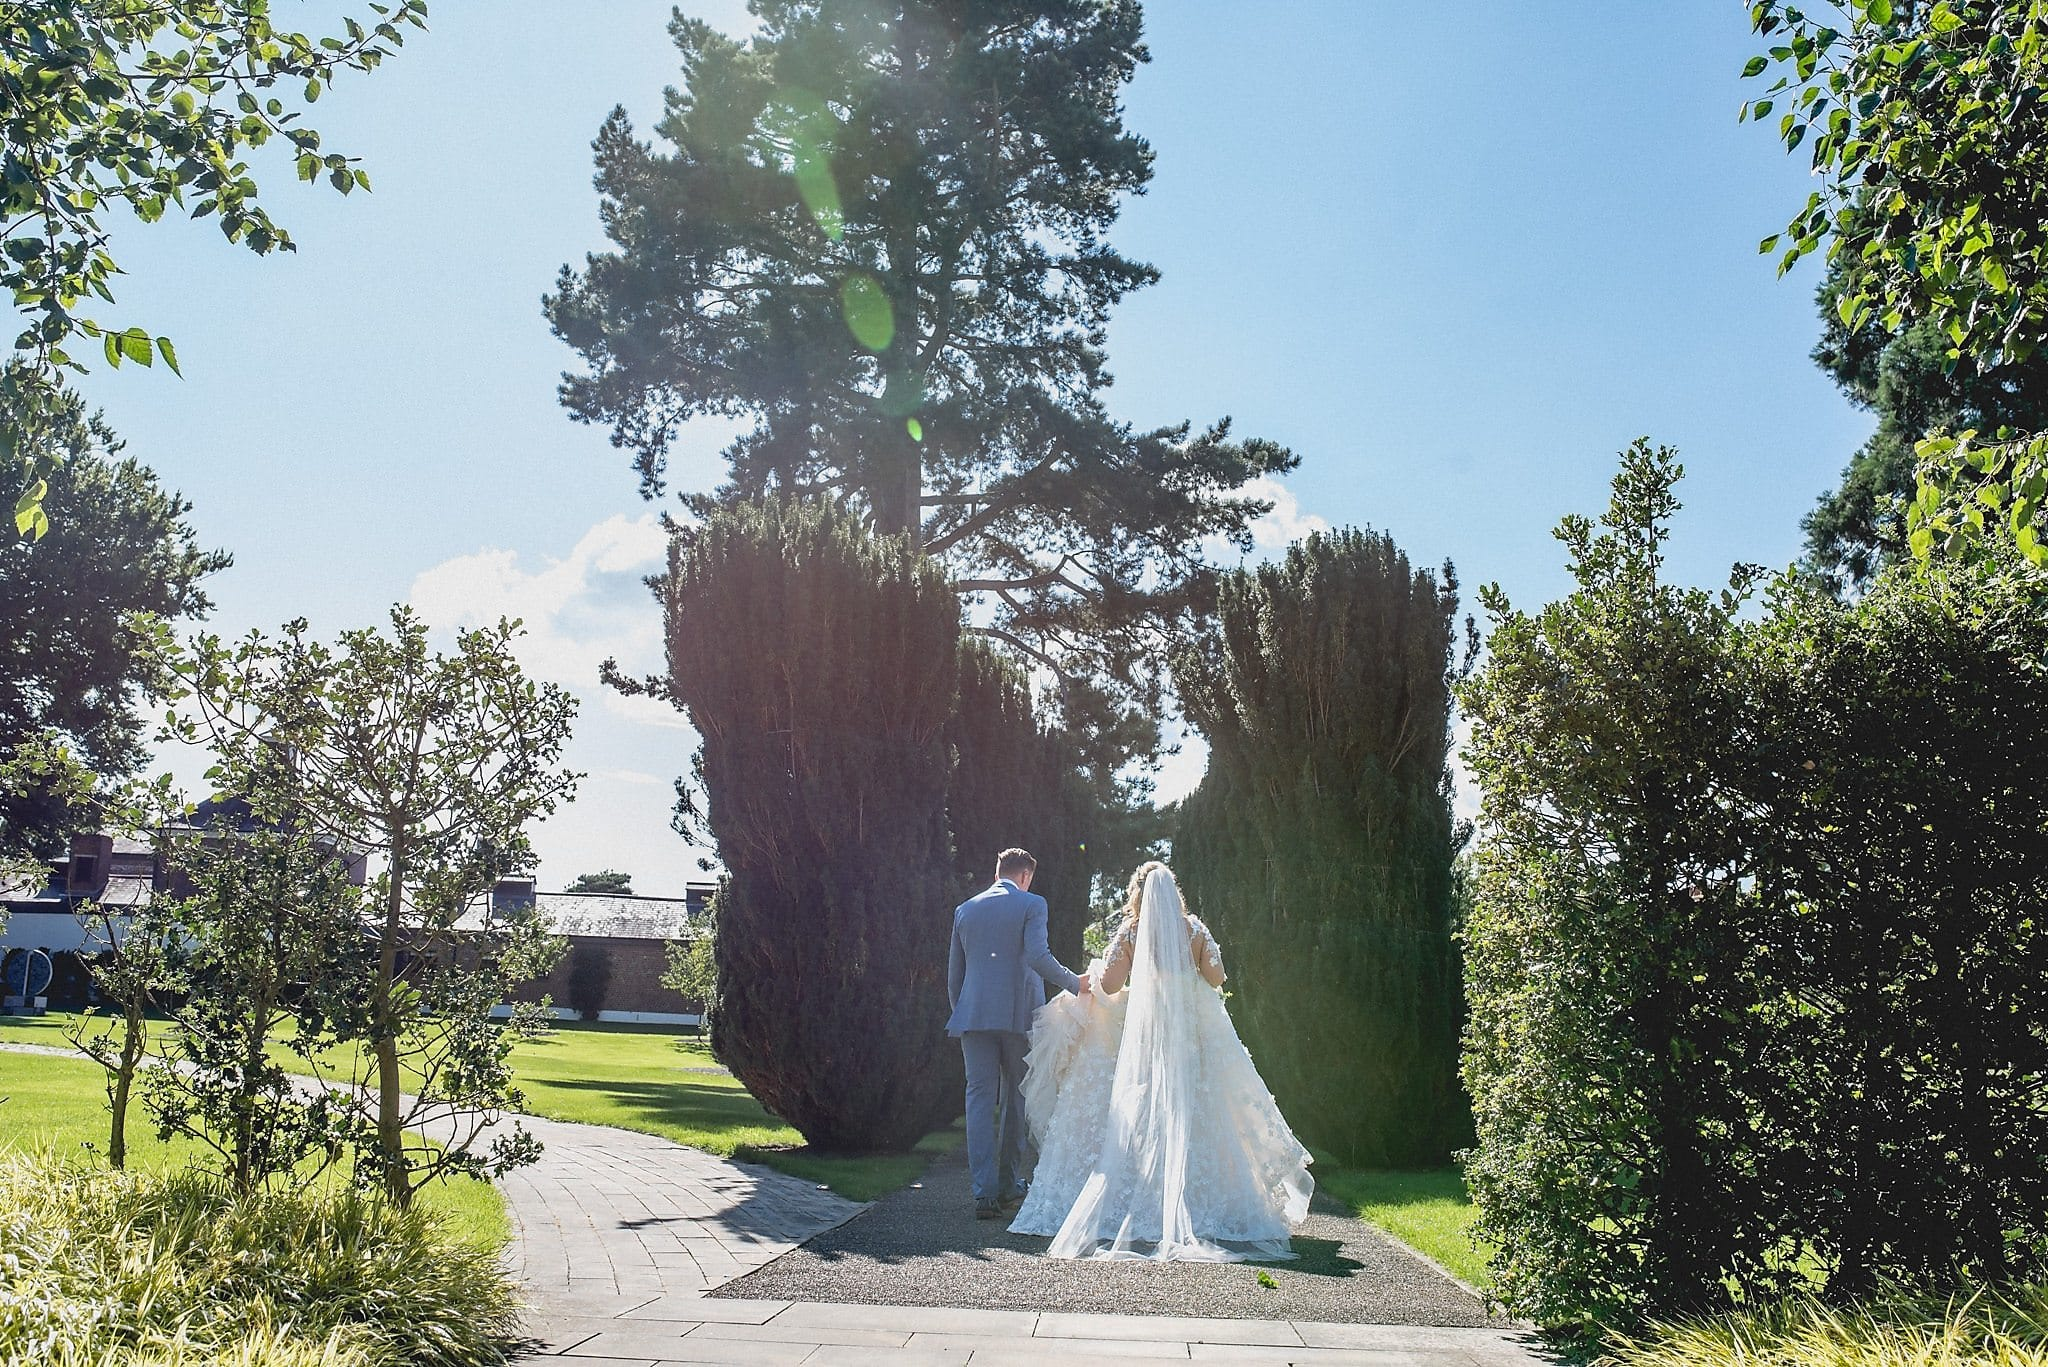 Bride and groom go for a walk in the gardens.